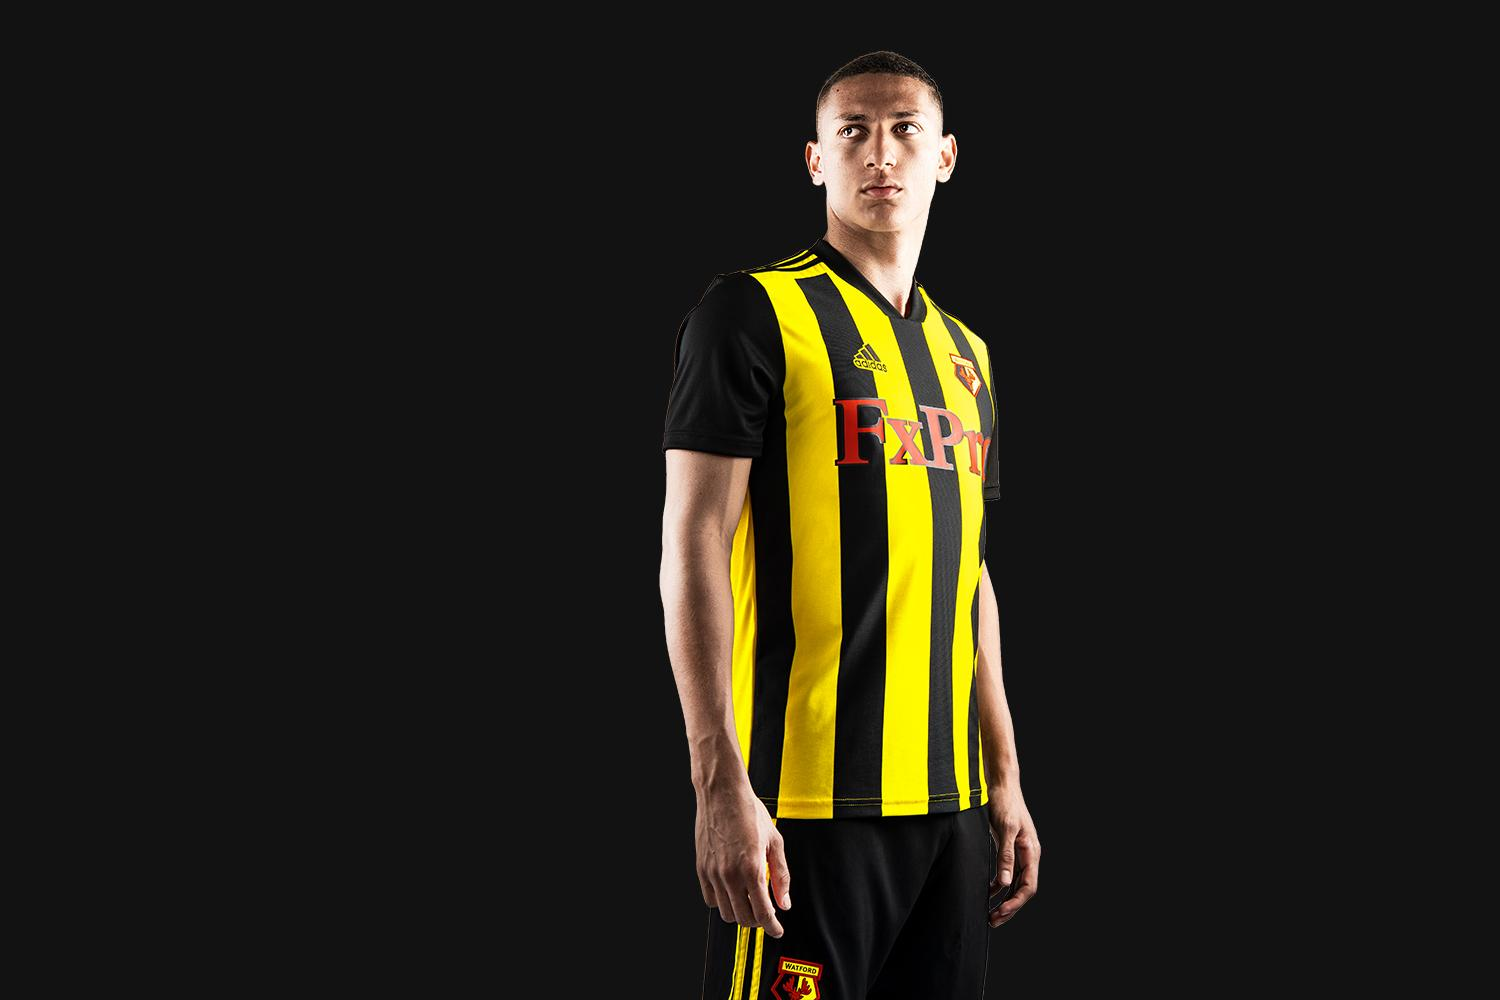 watford-18-19-home-kit-2.jpg